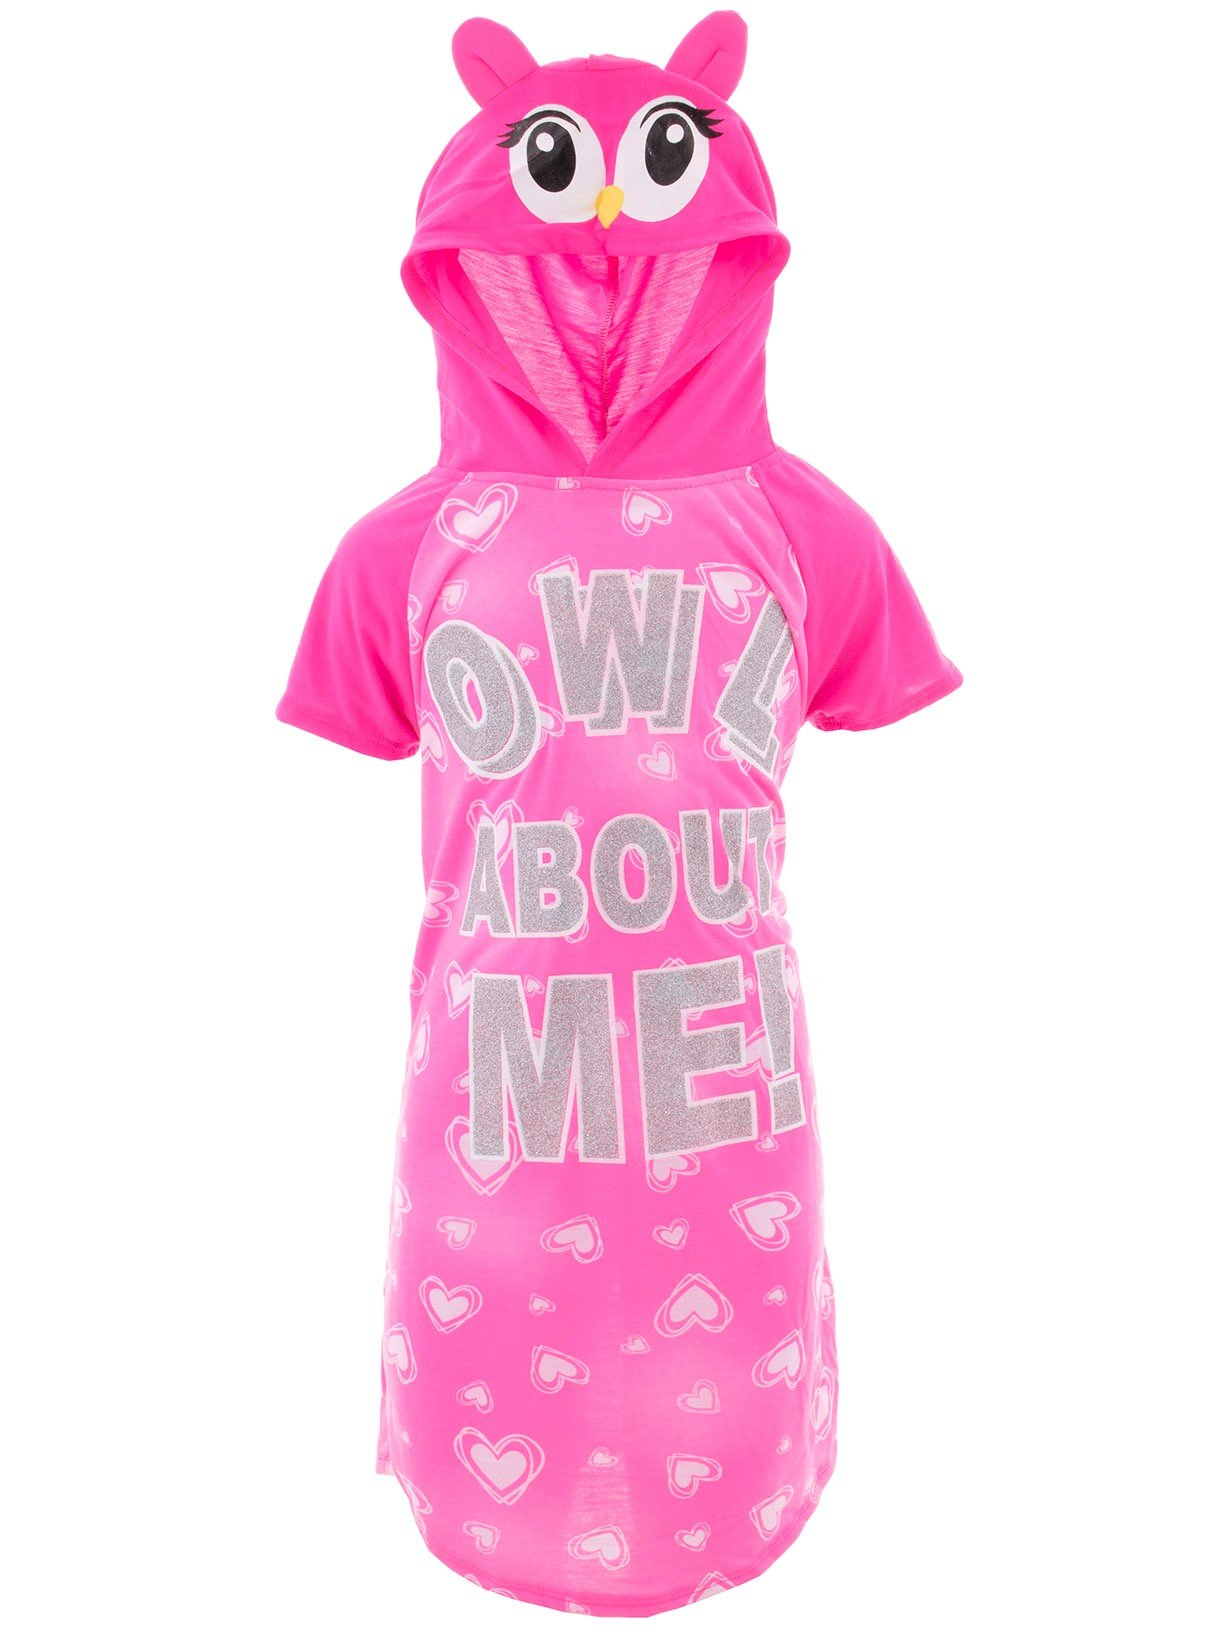 SWEET N SASSY Big Girls' Owl About Me Pink Hooded Nightgown 7-8